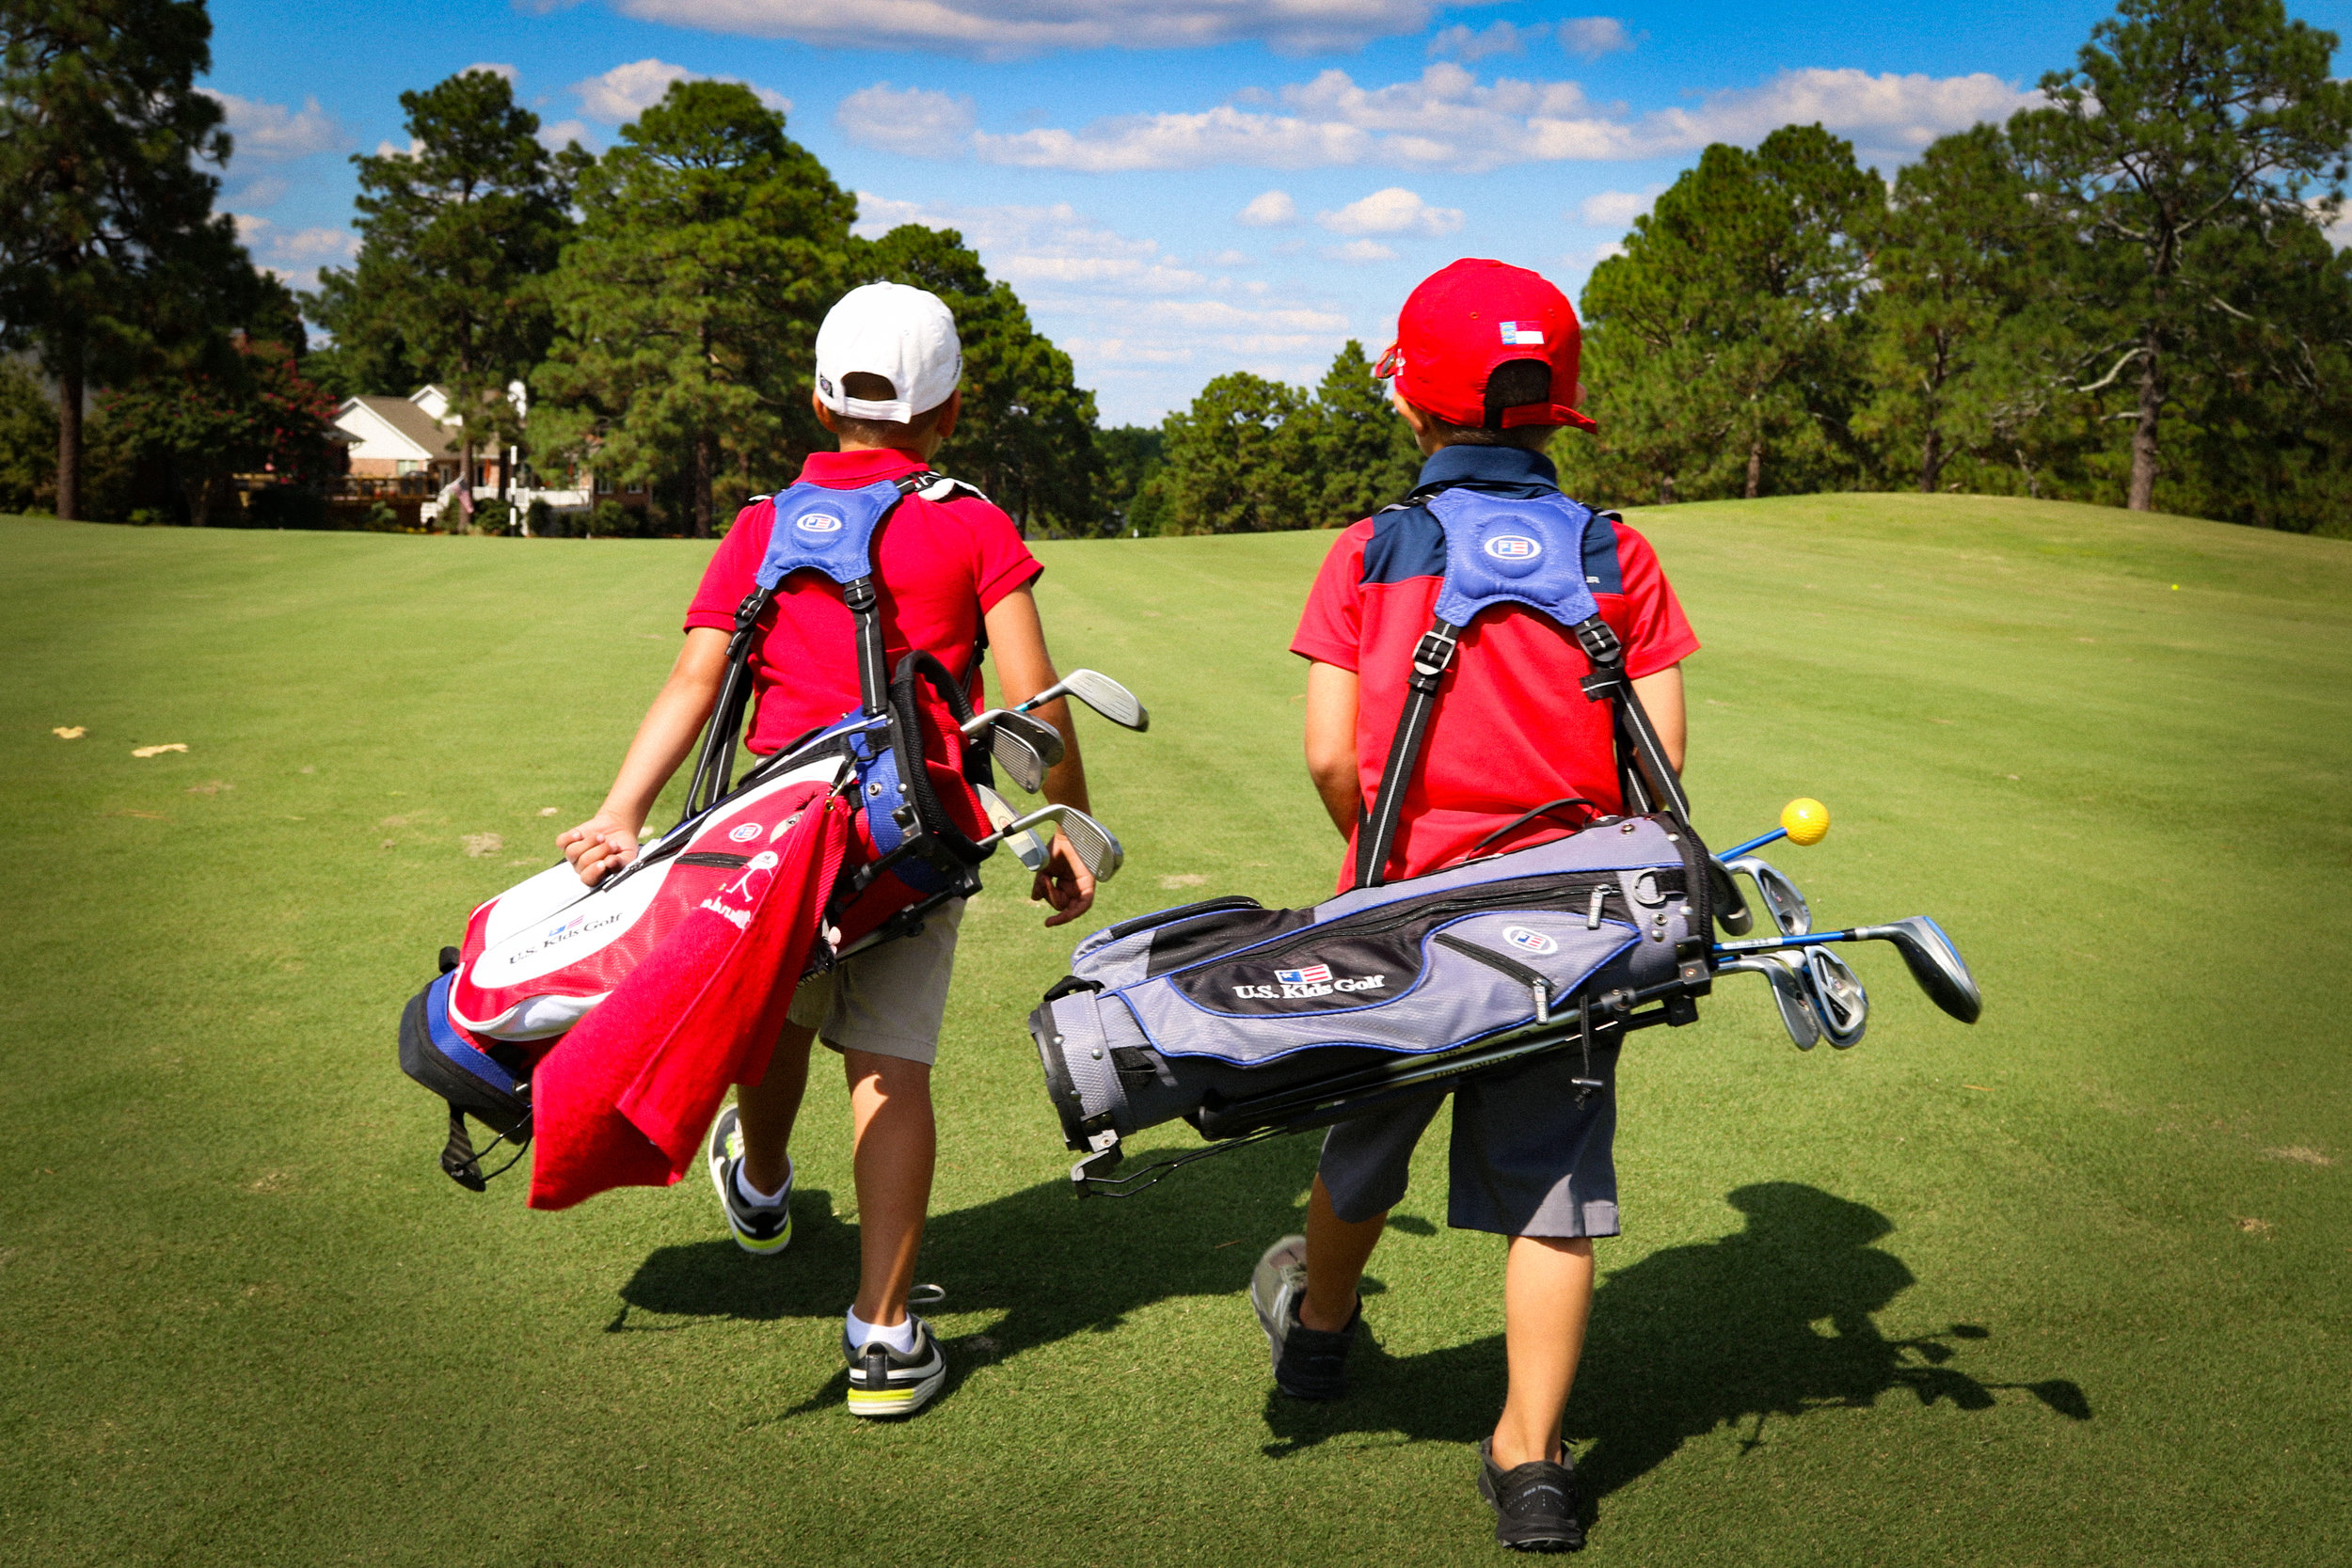 Properly fit equipment is essential in proper swing development. We set your player on the right path from the beginning.